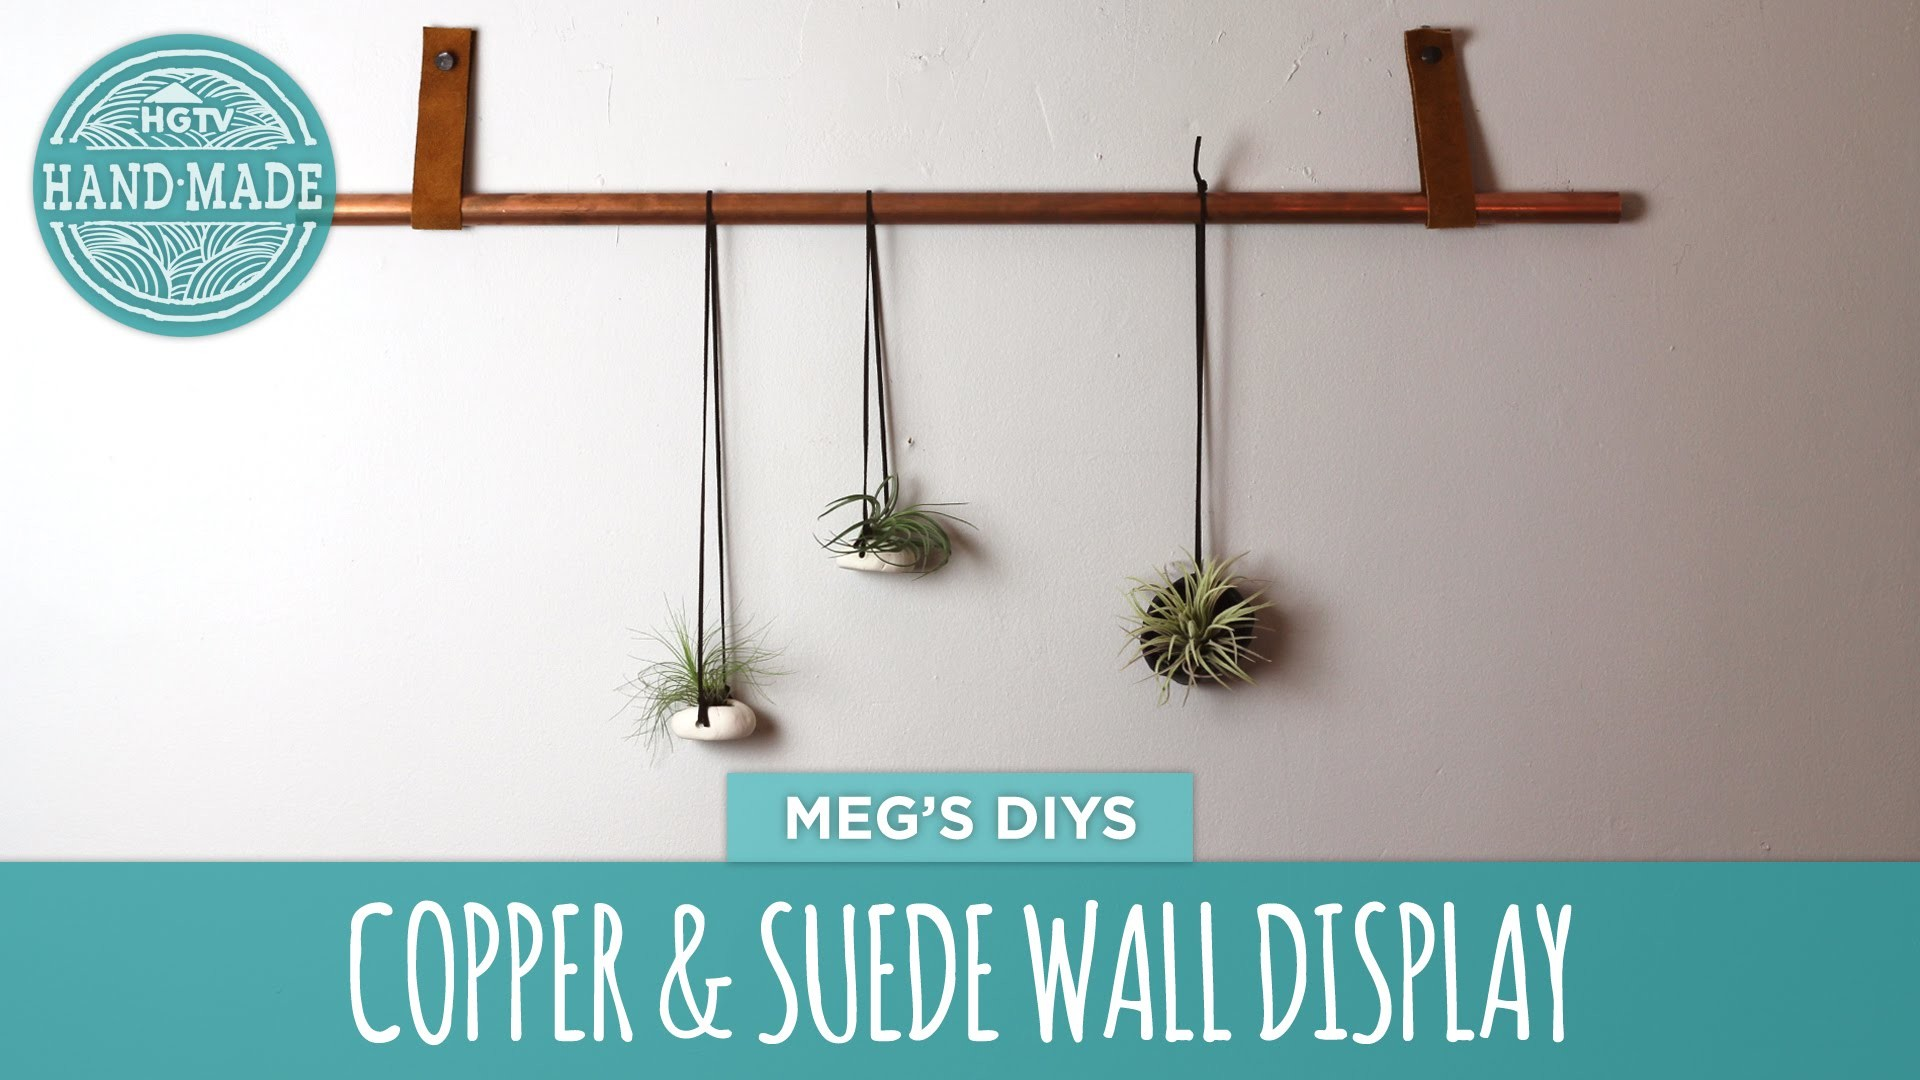 Copper & Suede Wall Display - HGTV Handmade